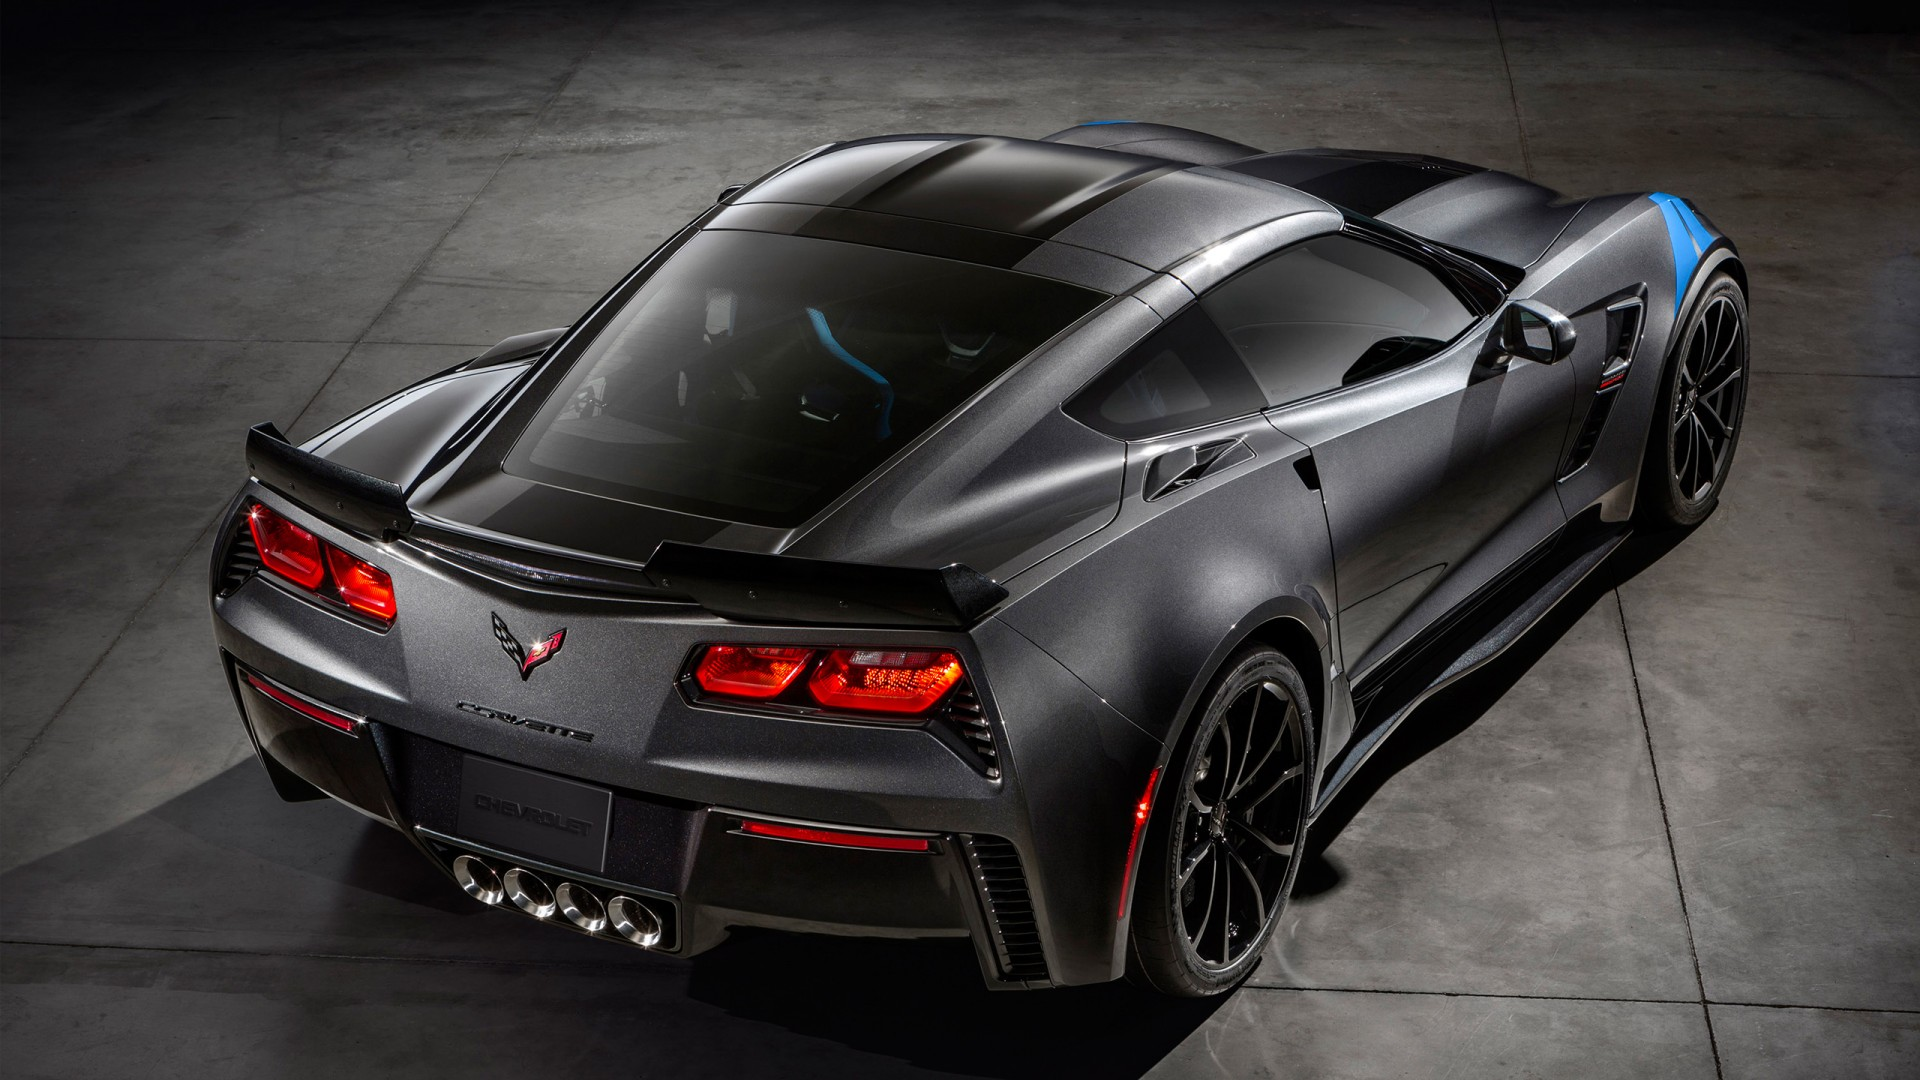 2017 chevrolet corvette grand sport 2 wallpaper hd car wallpapers id 6272. Black Bedroom Furniture Sets. Home Design Ideas